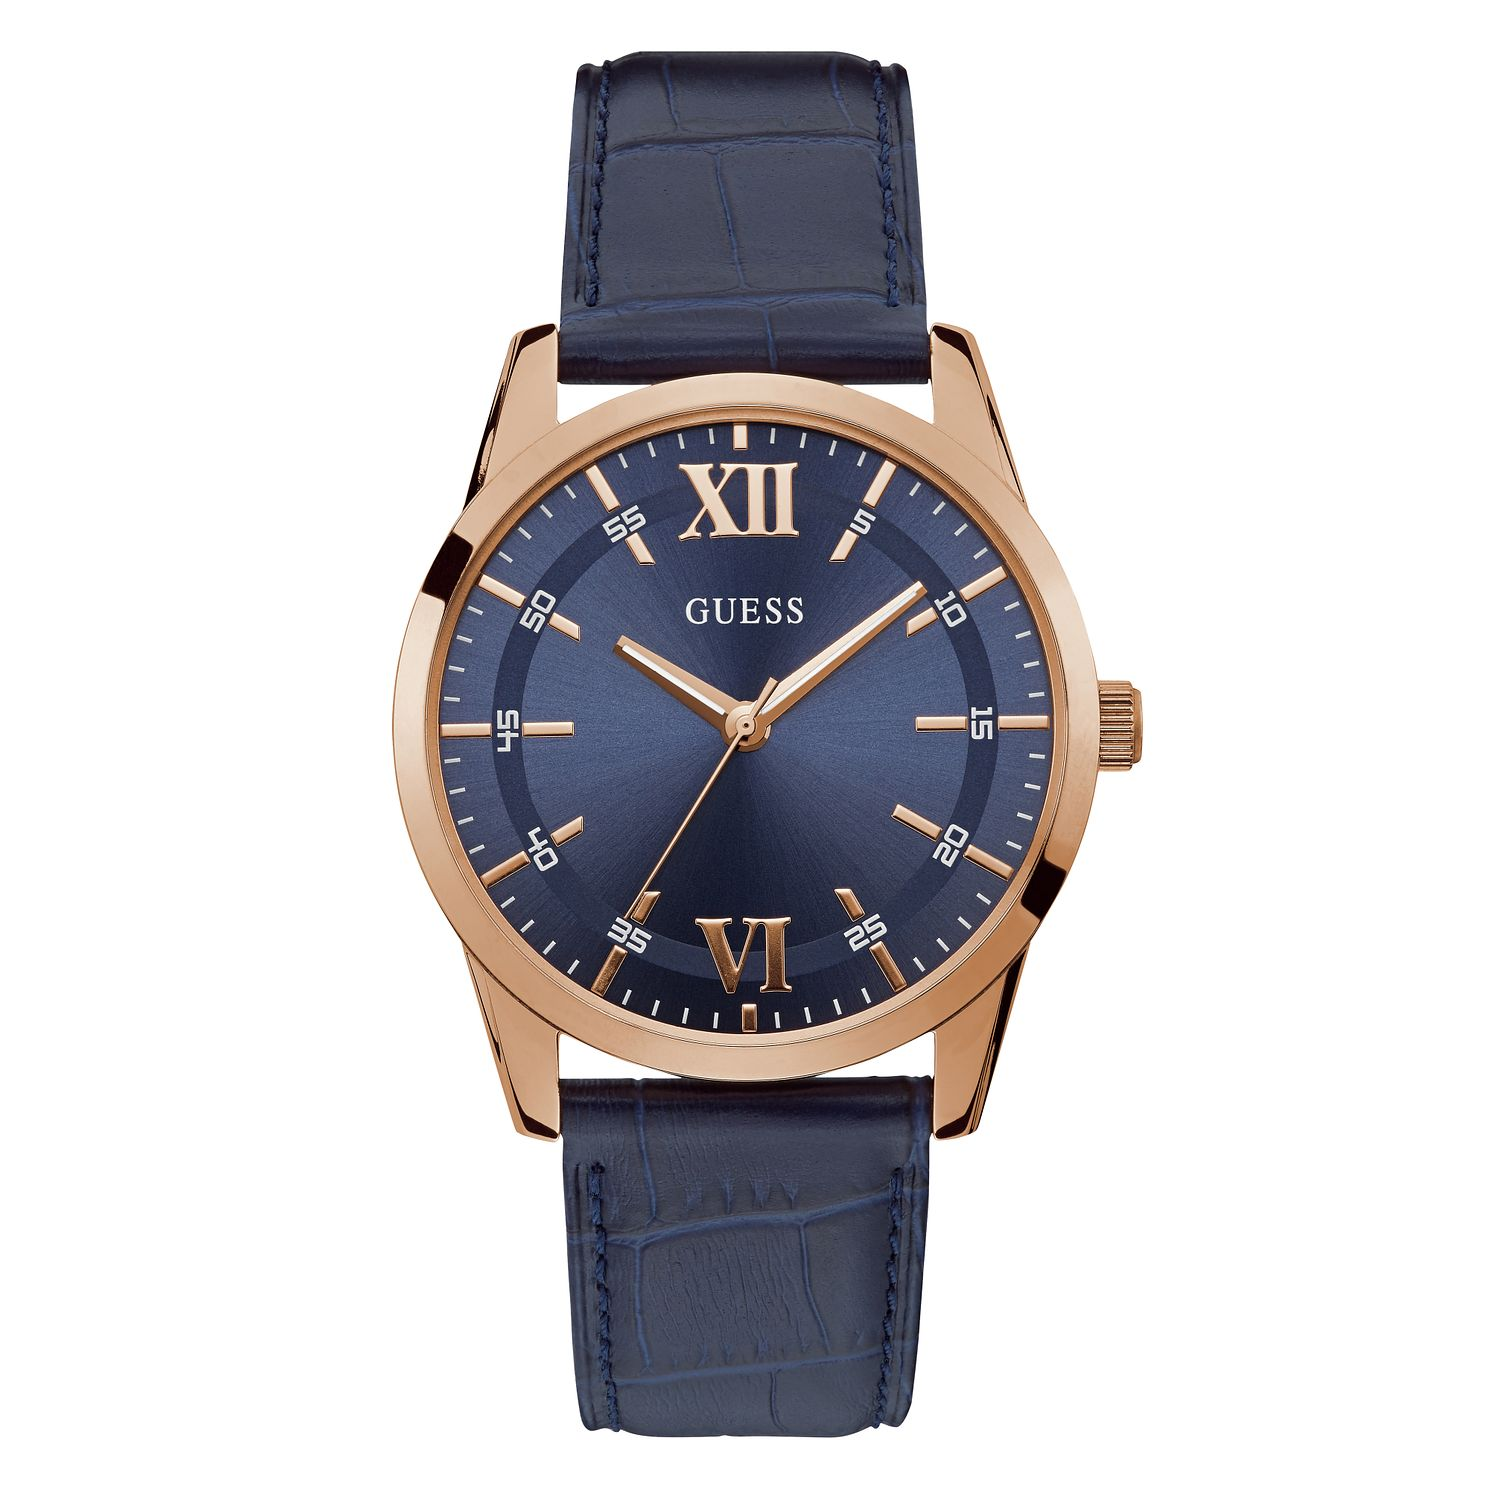 Guess Theo Men's Blue Leather Strap Watch - Product number 5870658